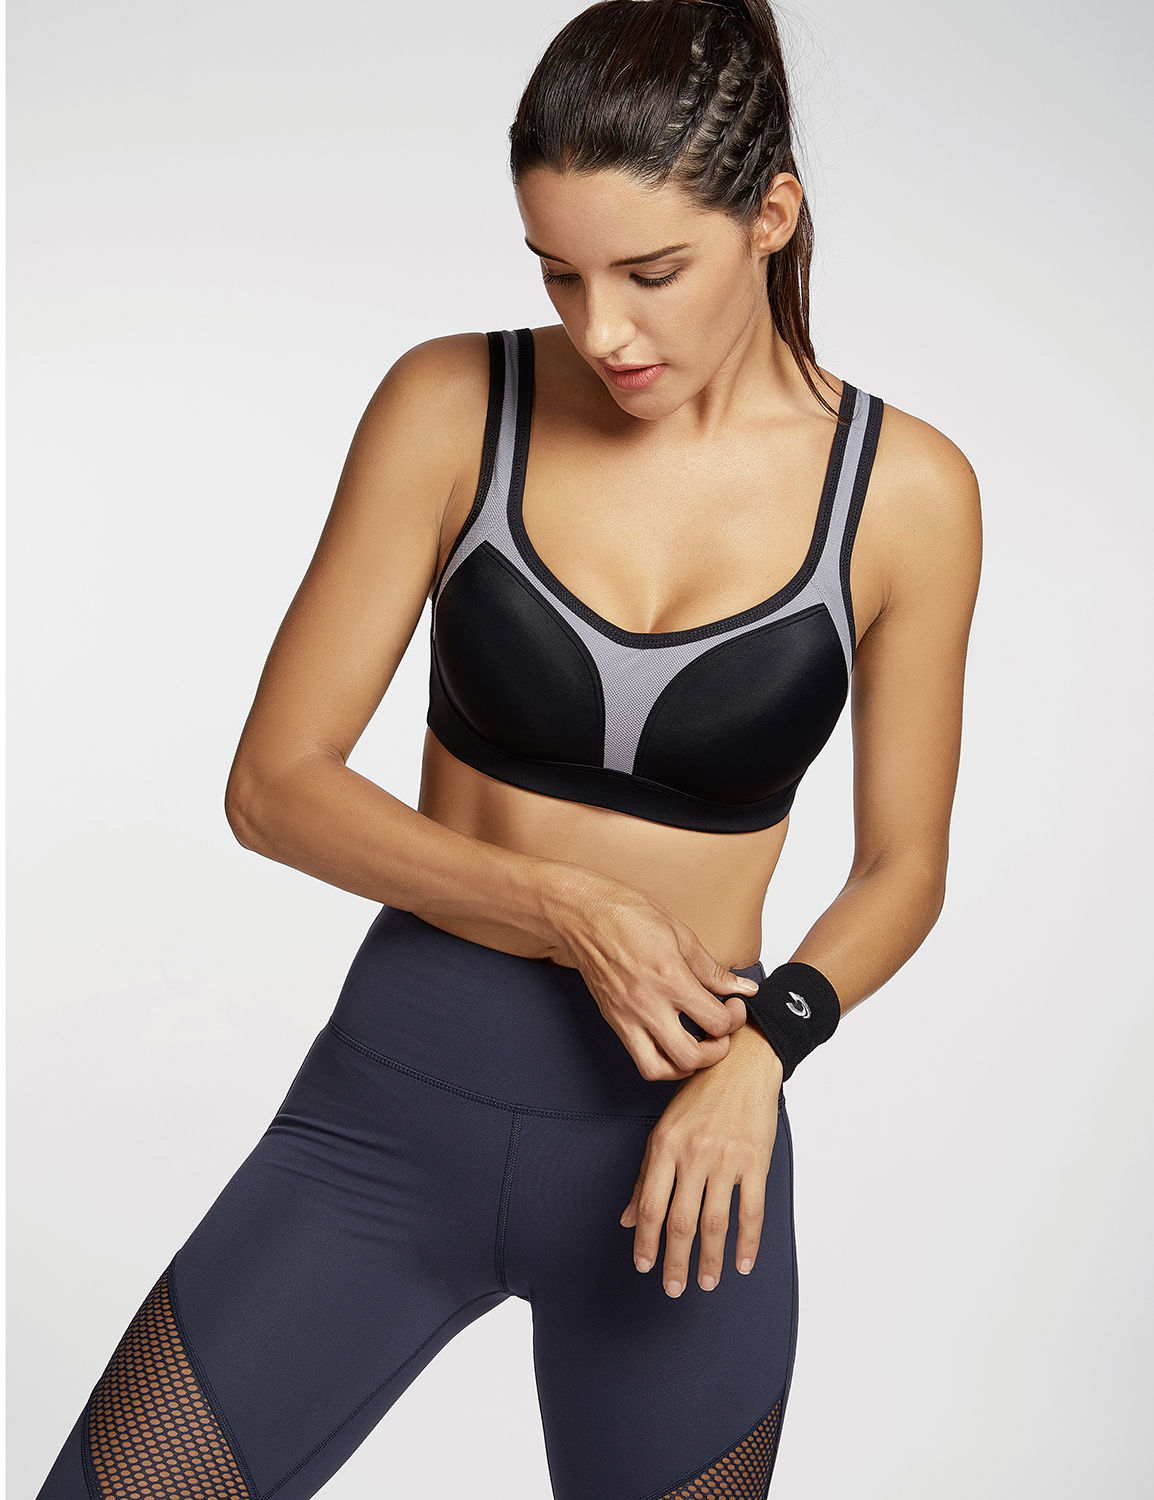 Women-039-s-Firm-Support-Contour-High-Impact-Underwire-Sports-Bra thumbnail 8